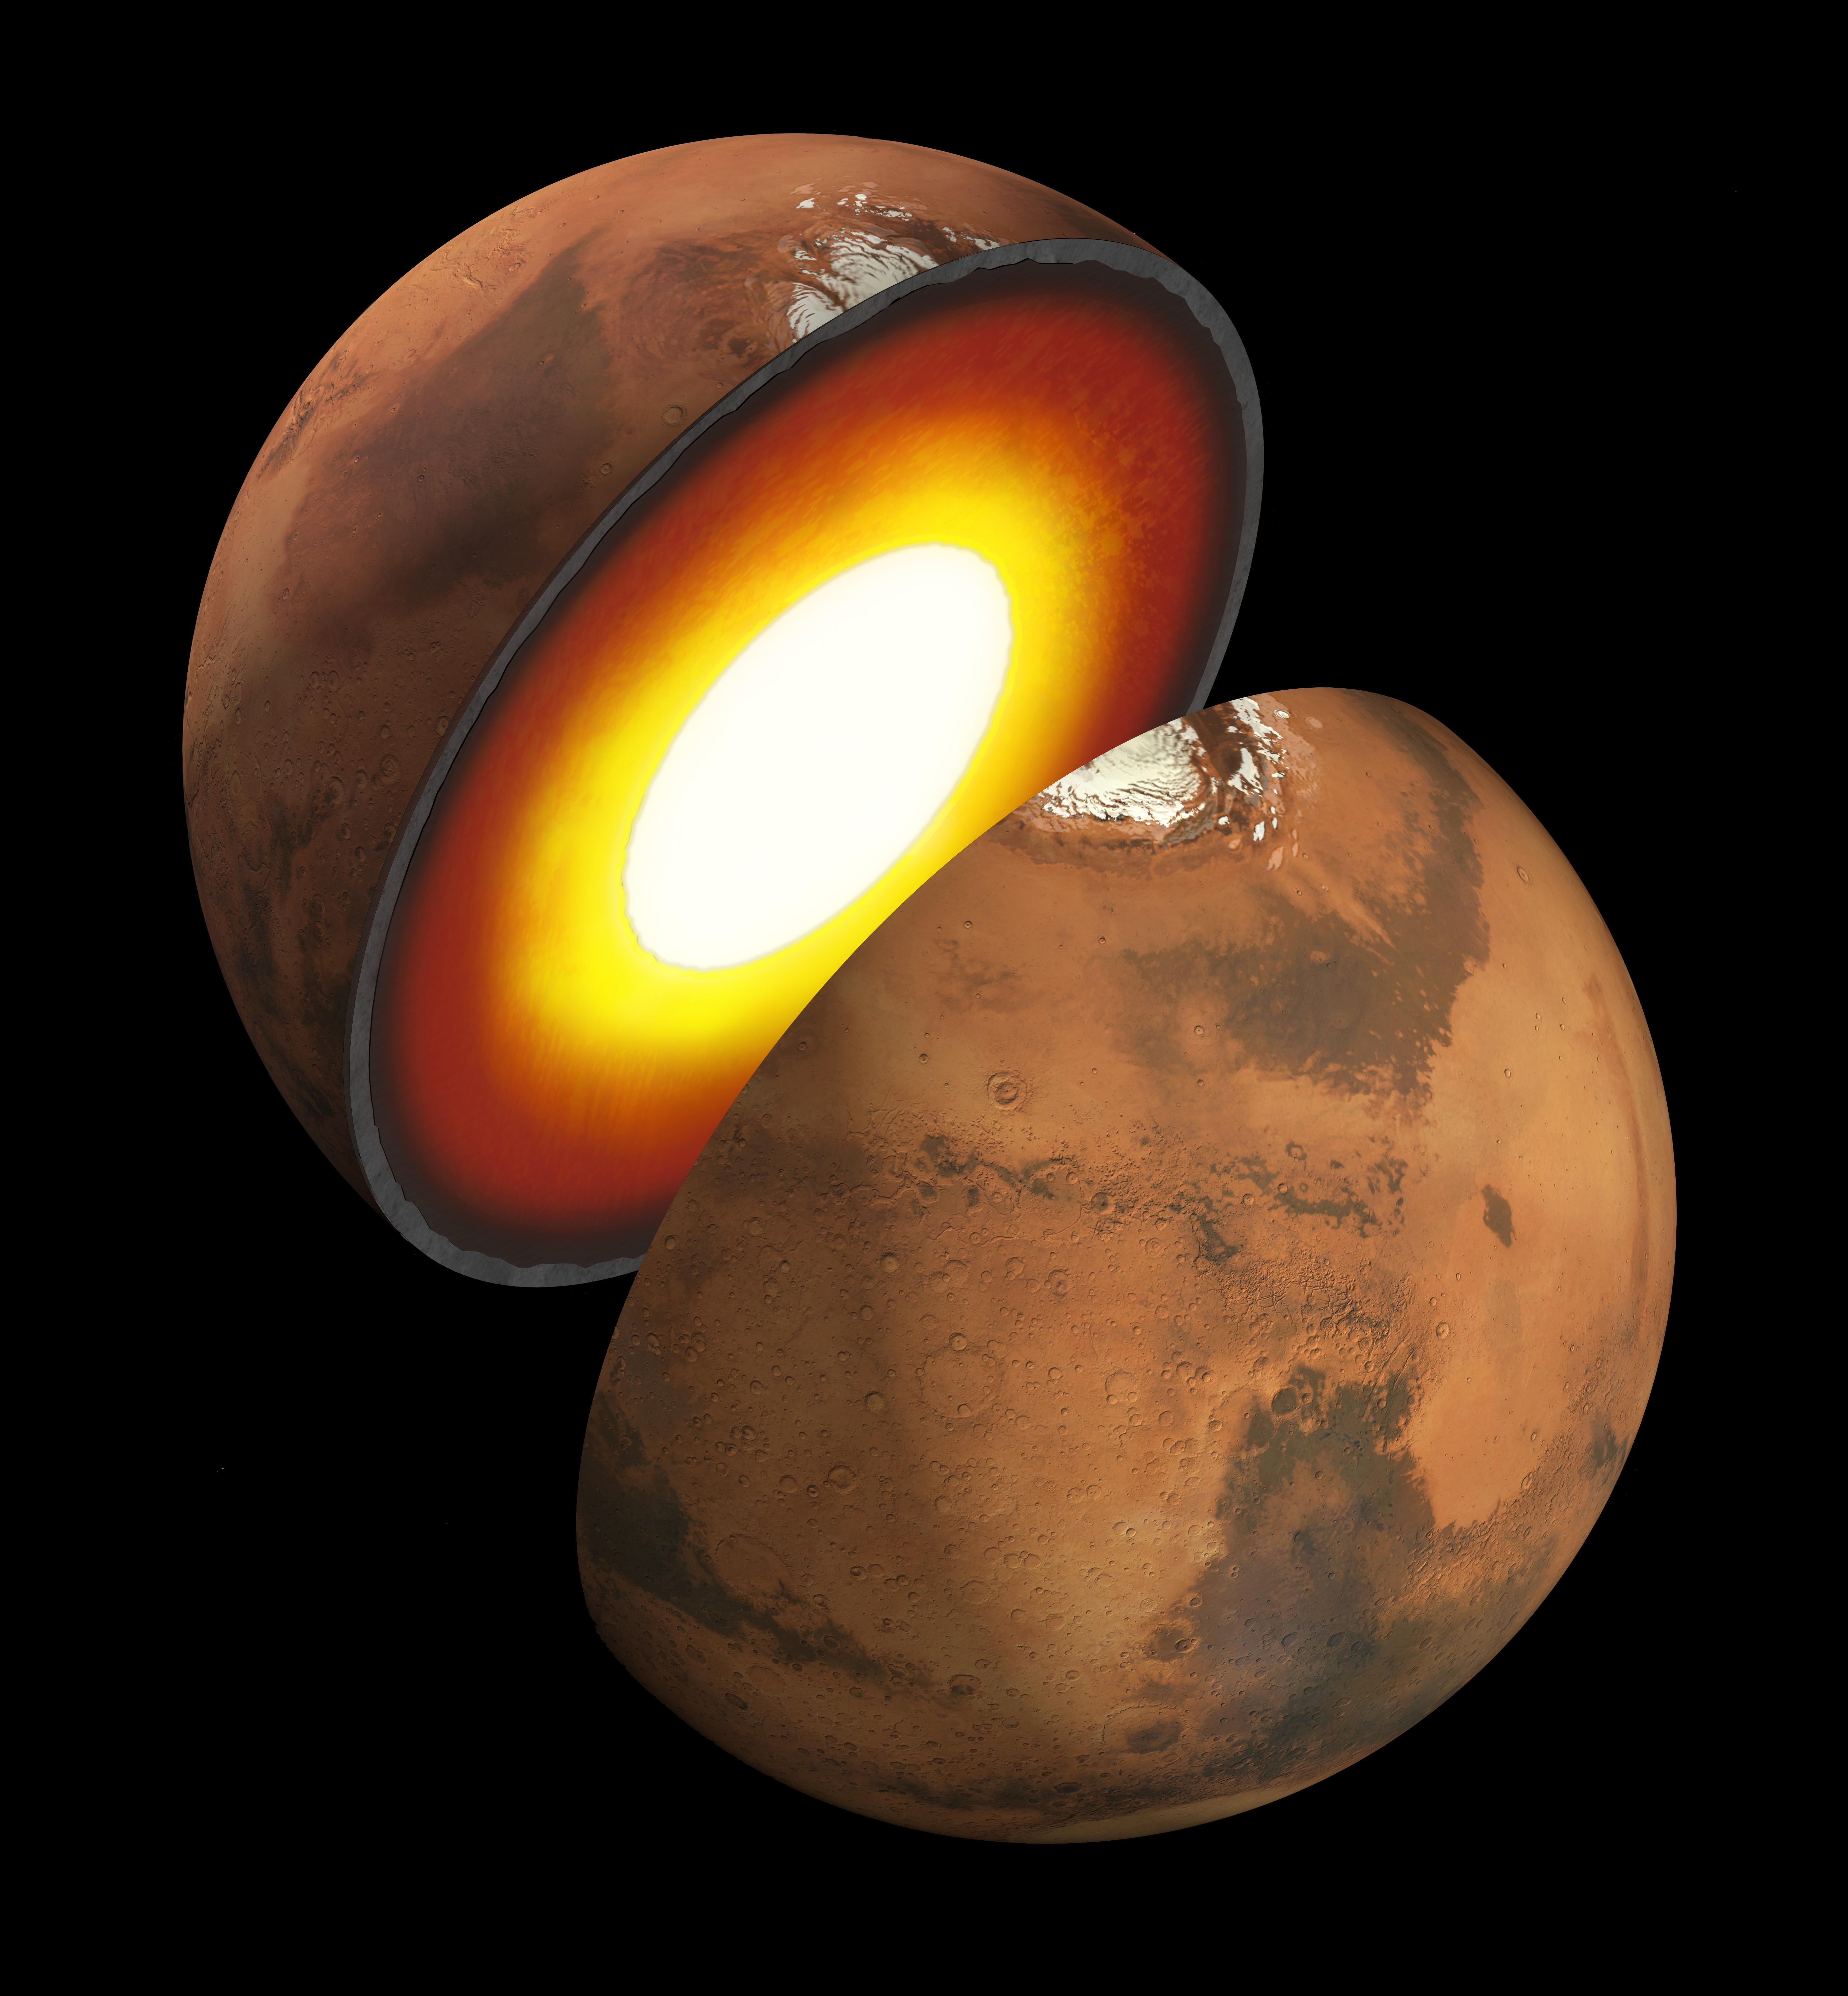 mars planet facts 10 #11